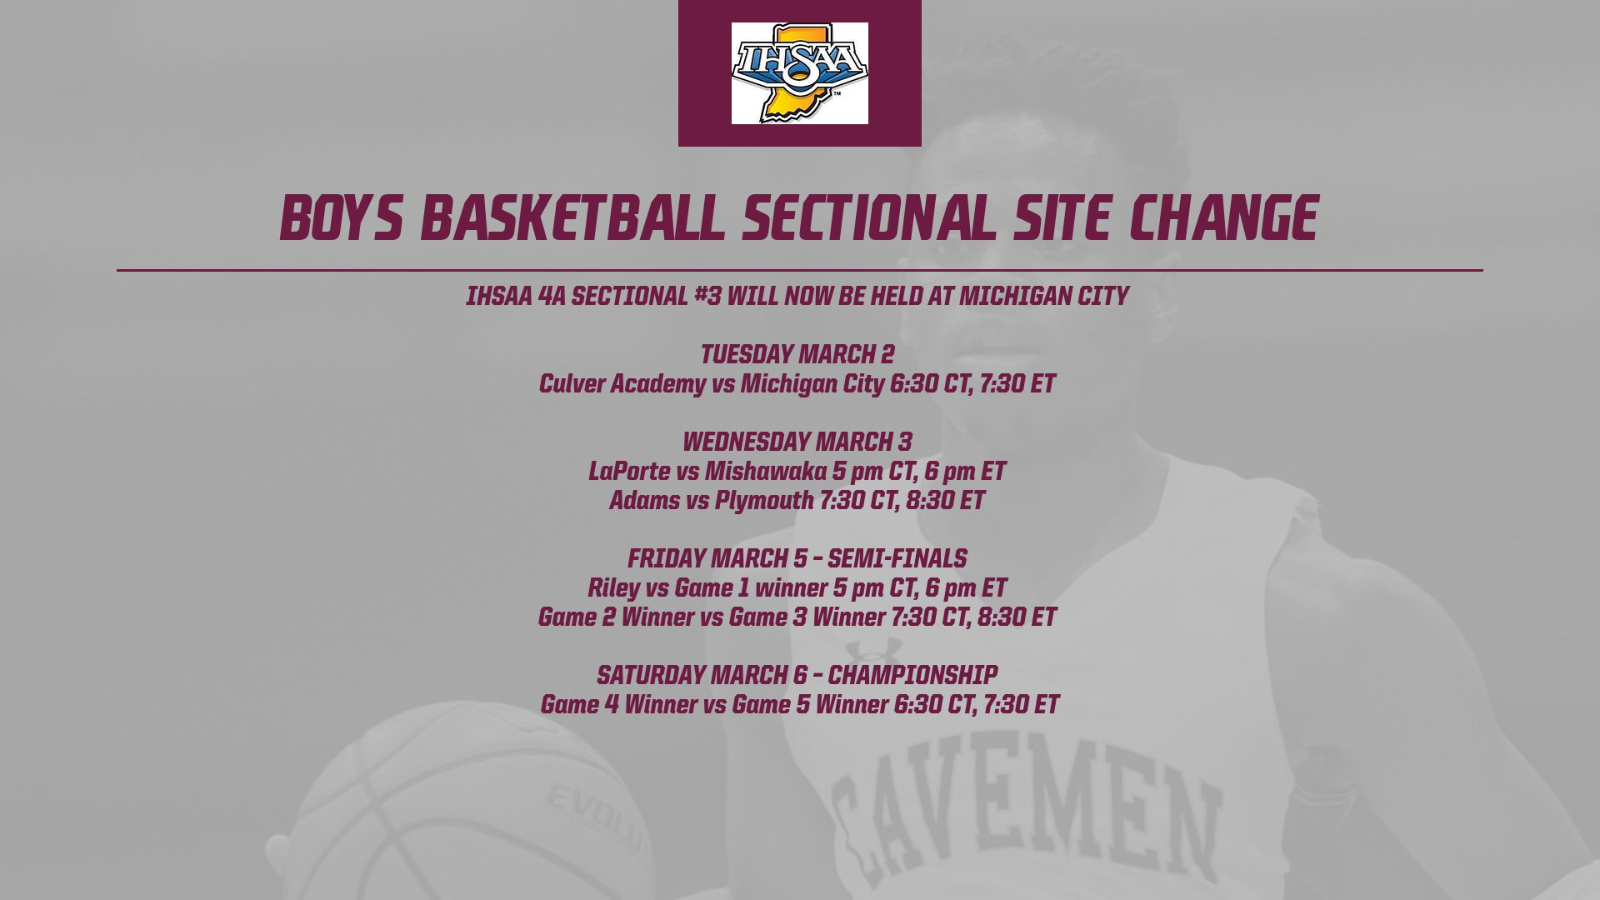 Boys Basketball Sectional Site has been moved to Michigan City